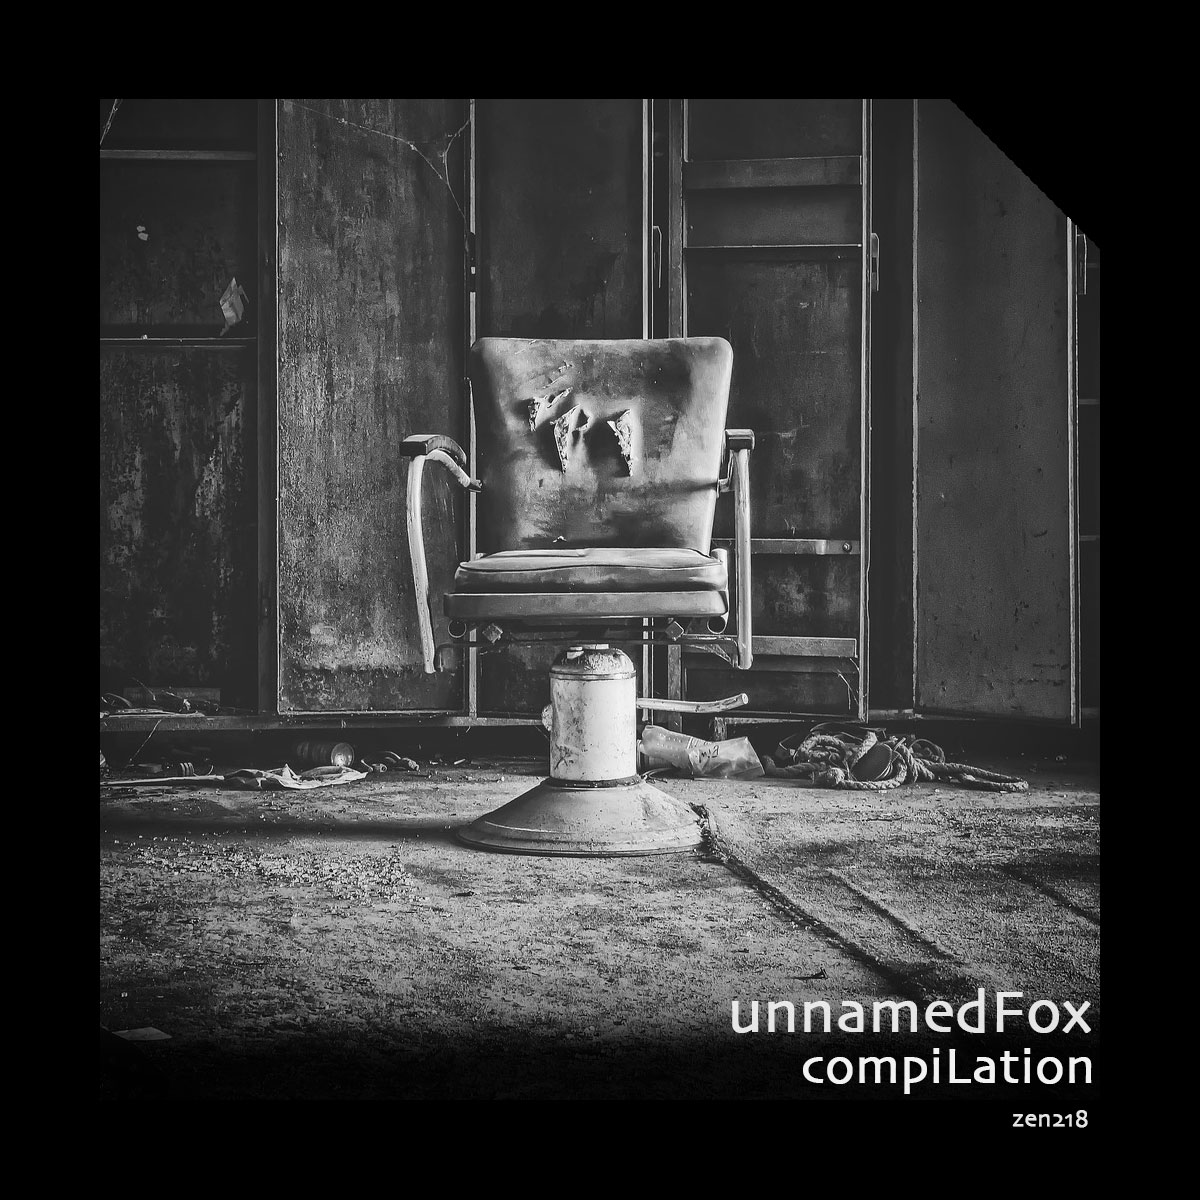 unnamedFox – compiLation